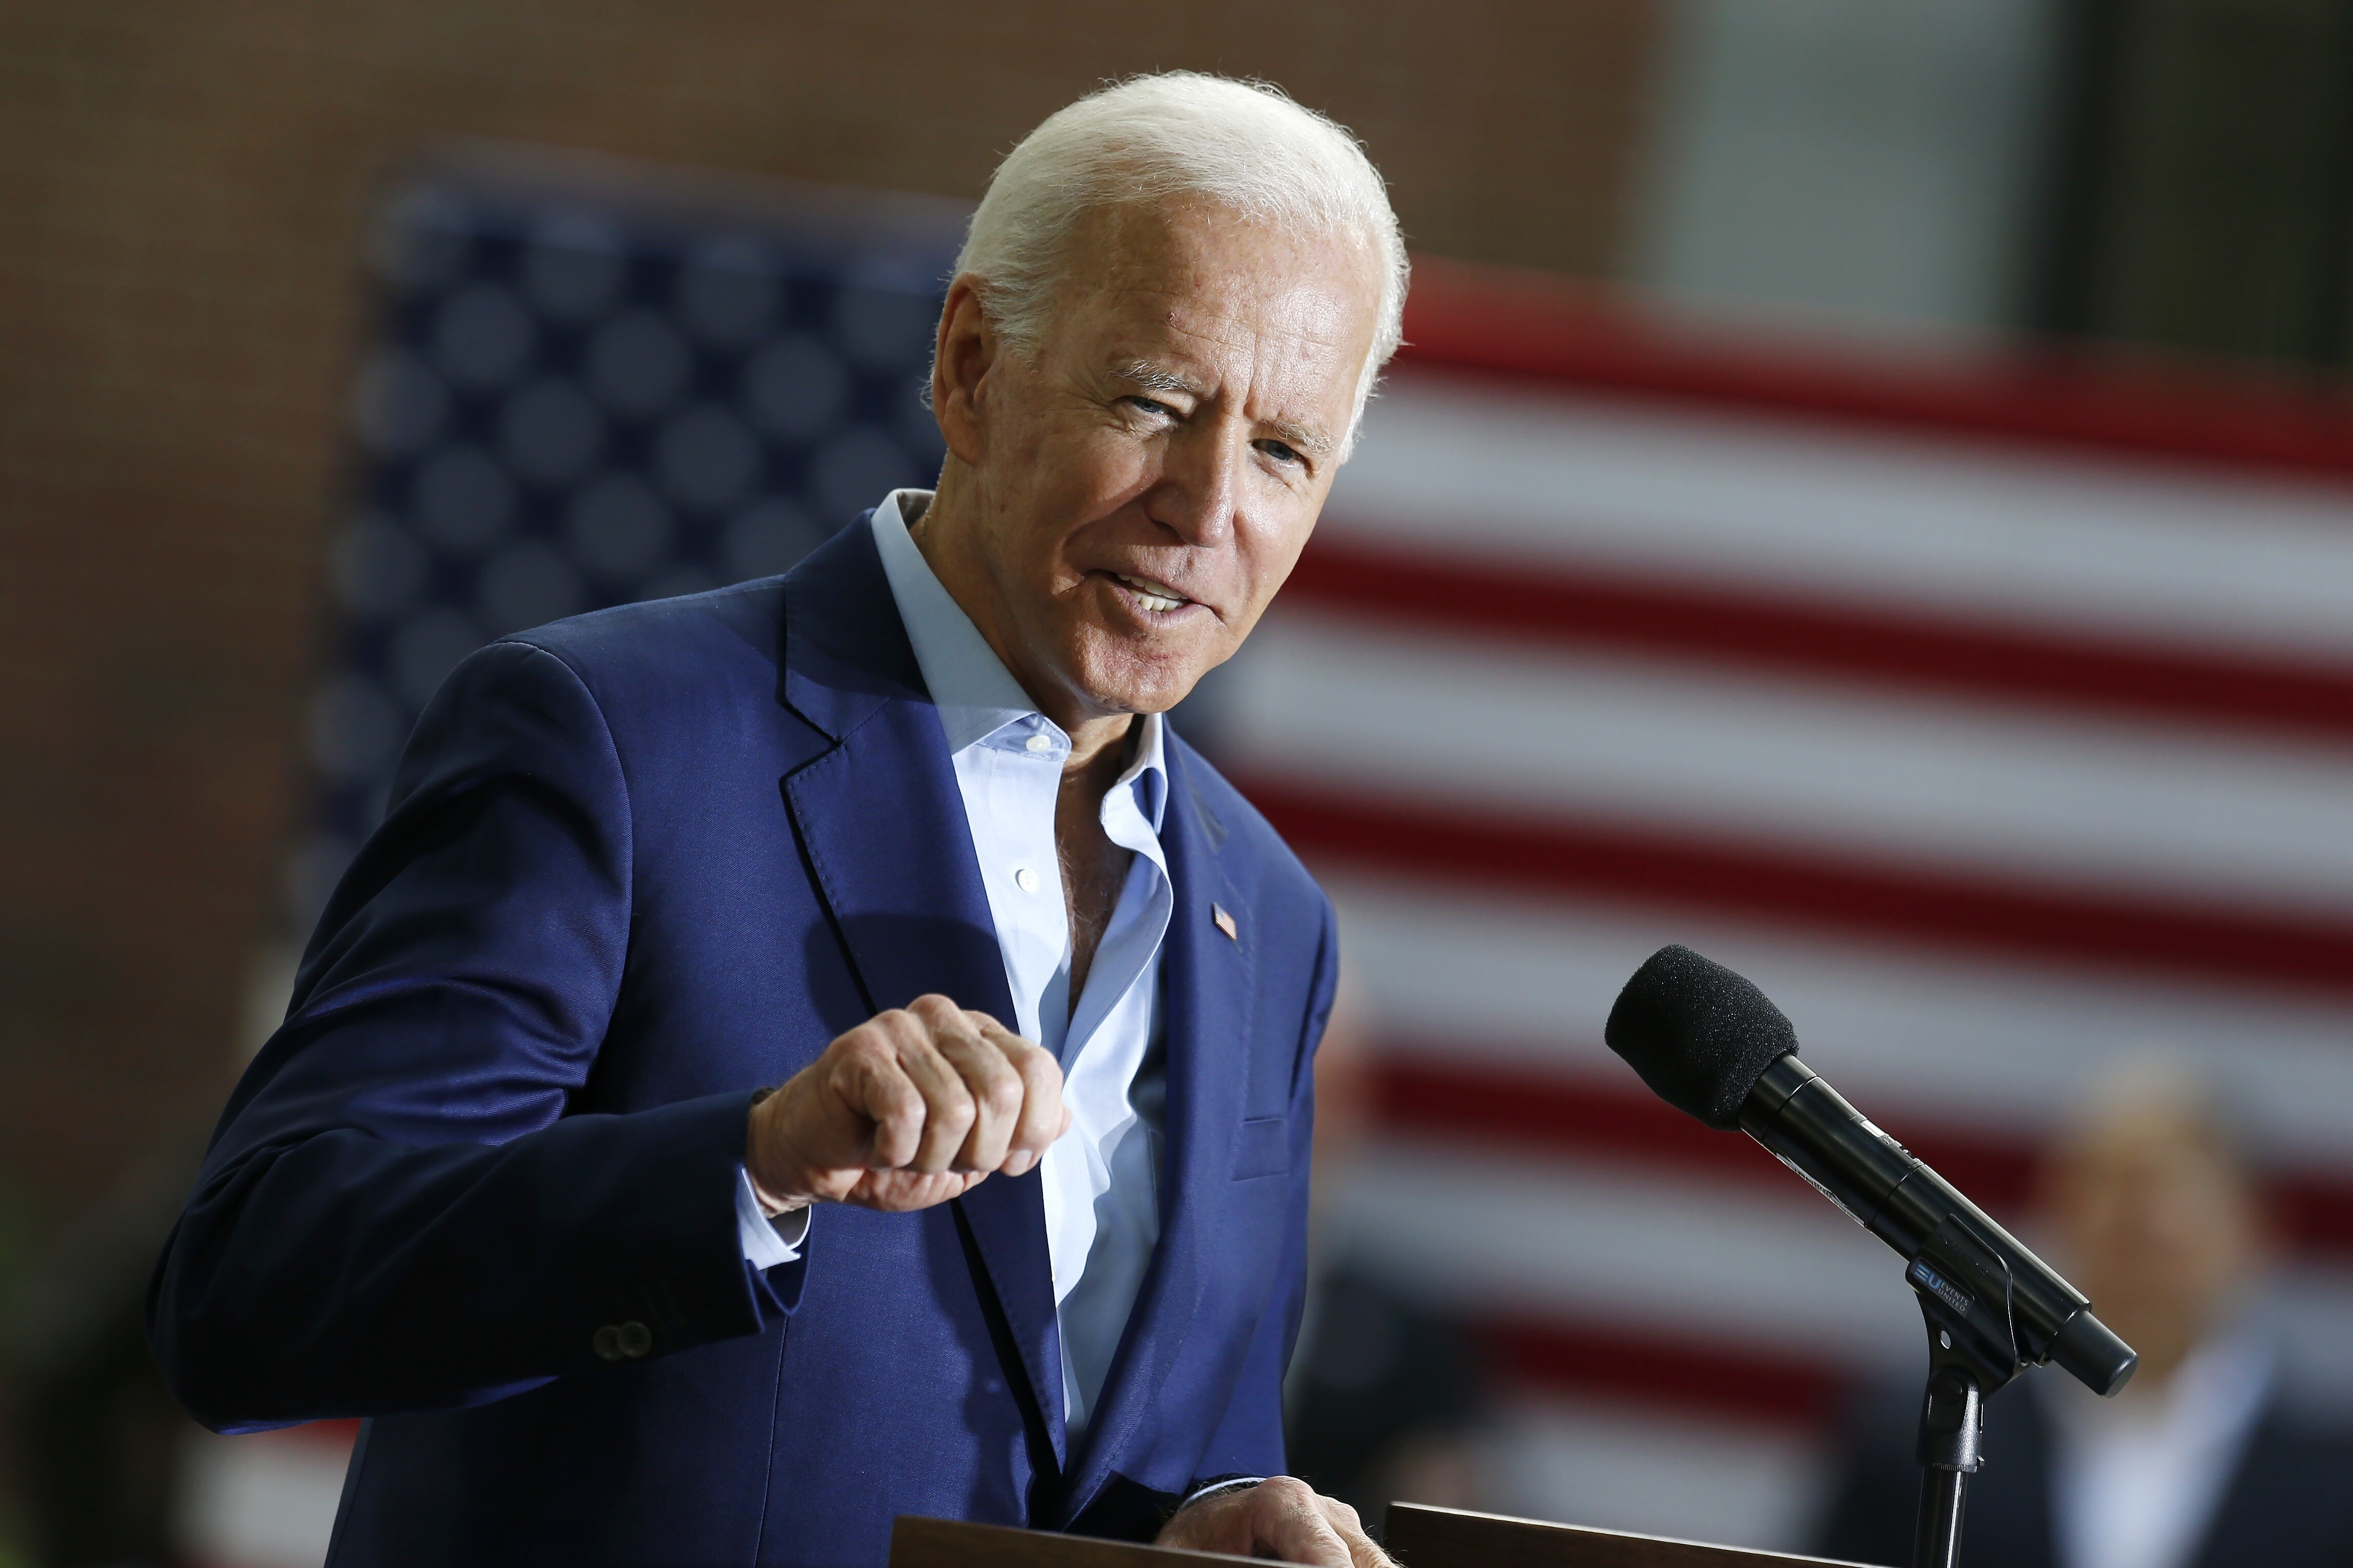 Poll: Americans believe Biden is 30 years too old to be president